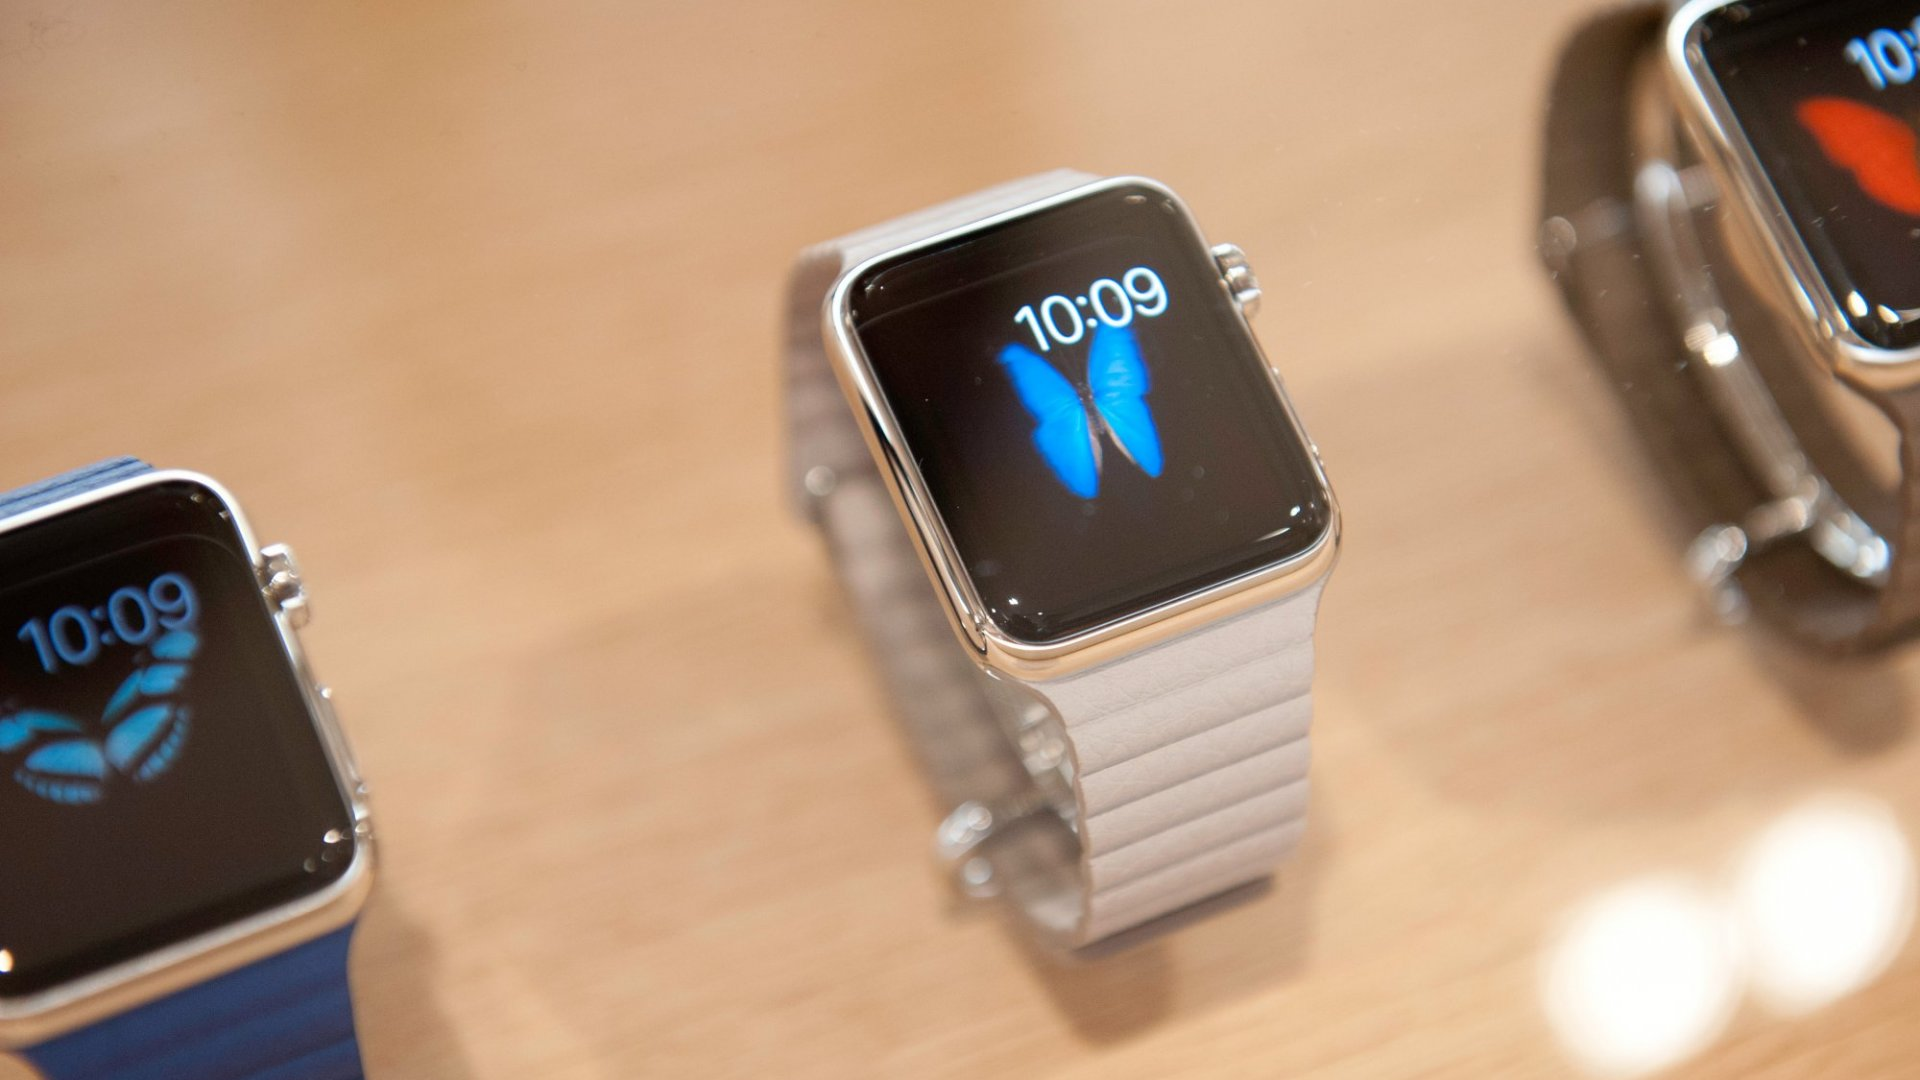 Apple presents its Apple Watch at Colette Paris on Sept. 30, 2014. (Photo by Kay-Paris Fernandes/Getty Images)